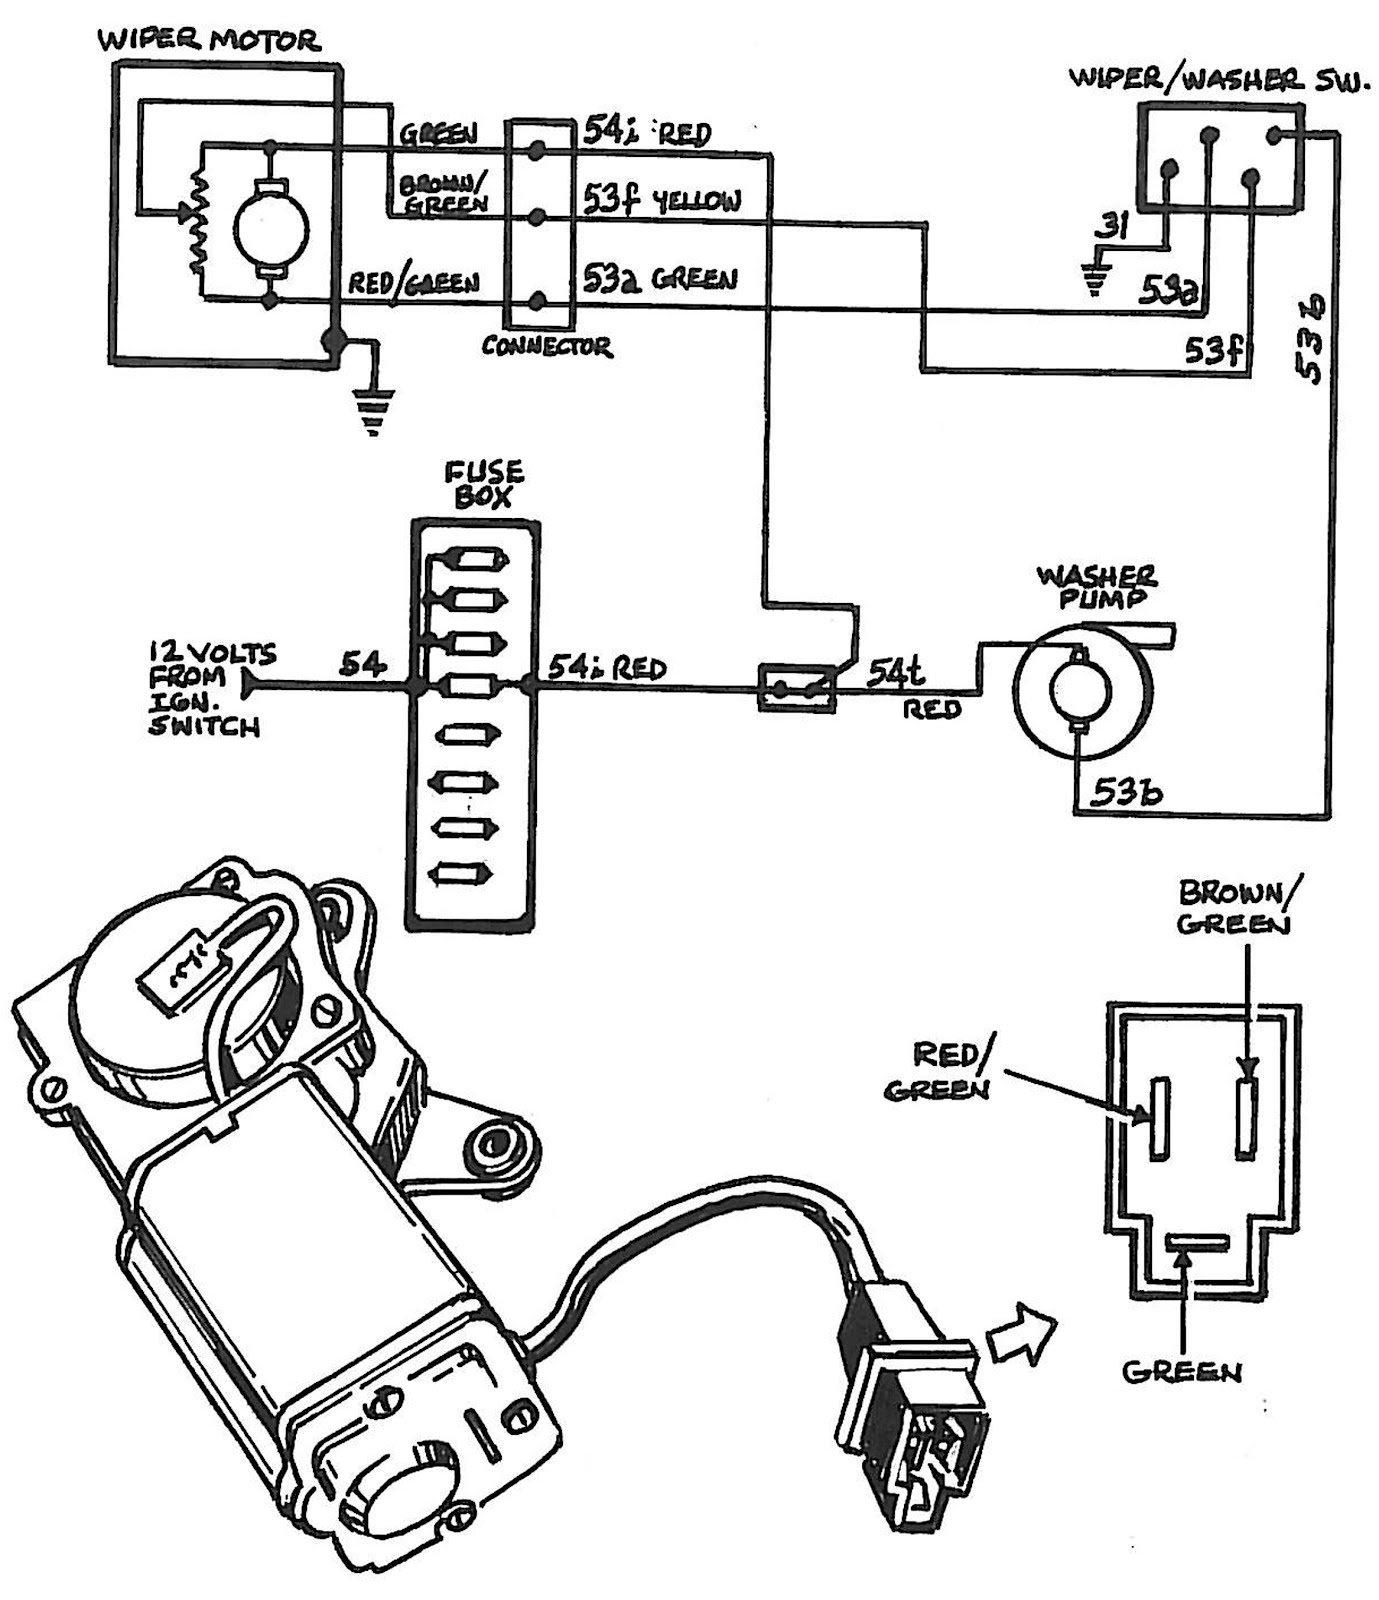 1970 Buick Skylark Wiring Diagram Opinions About 1972 Pontiac Ac Chevrolet Wiper Get Free Image Lincoln Diagrams